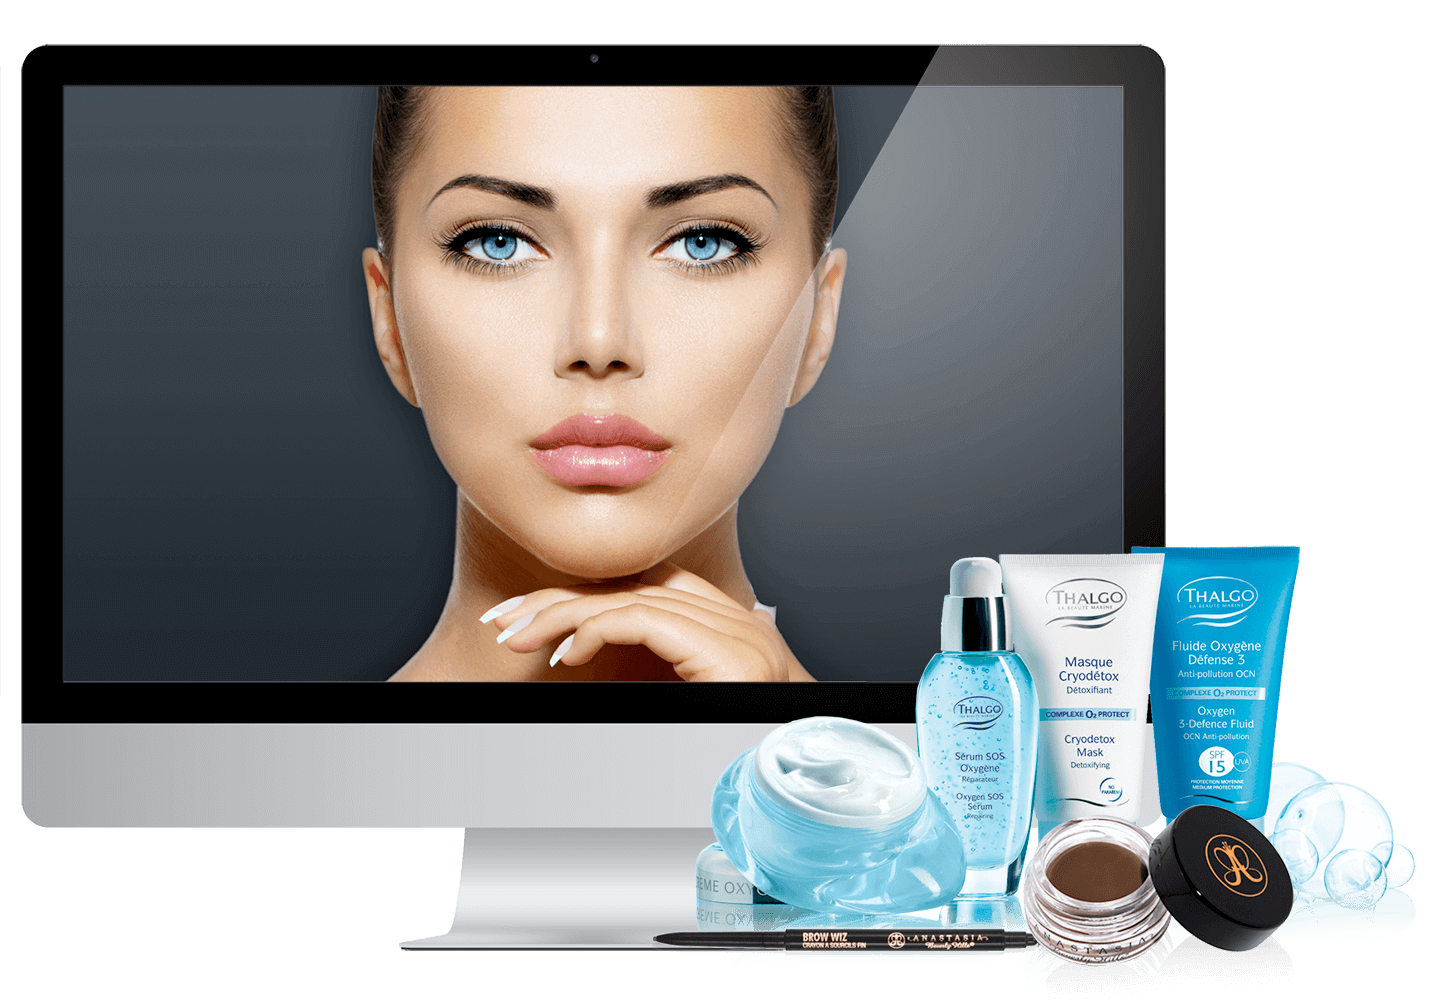 shop online beauty products  - Top 5 Benefits of Shopping for Beauty Products Online | Thinking Out ...